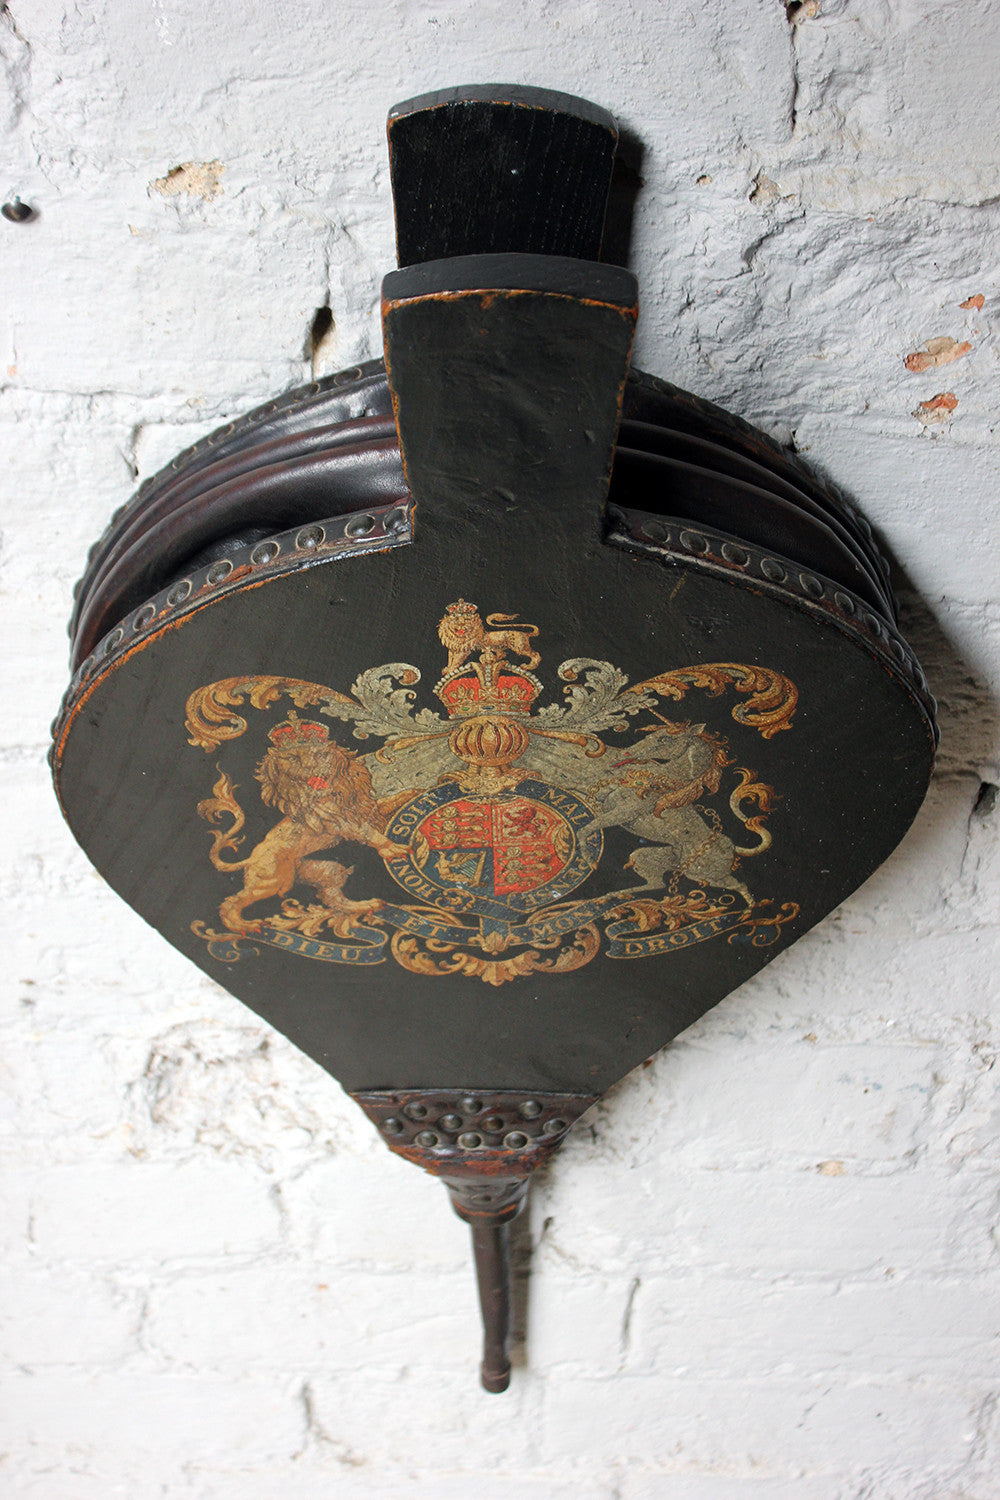 A Very Decorative 19thC Polychrome Painted Studded Leather Bound Pair of Bellows, Bearing The Royal Coat of Arms c.1870-80